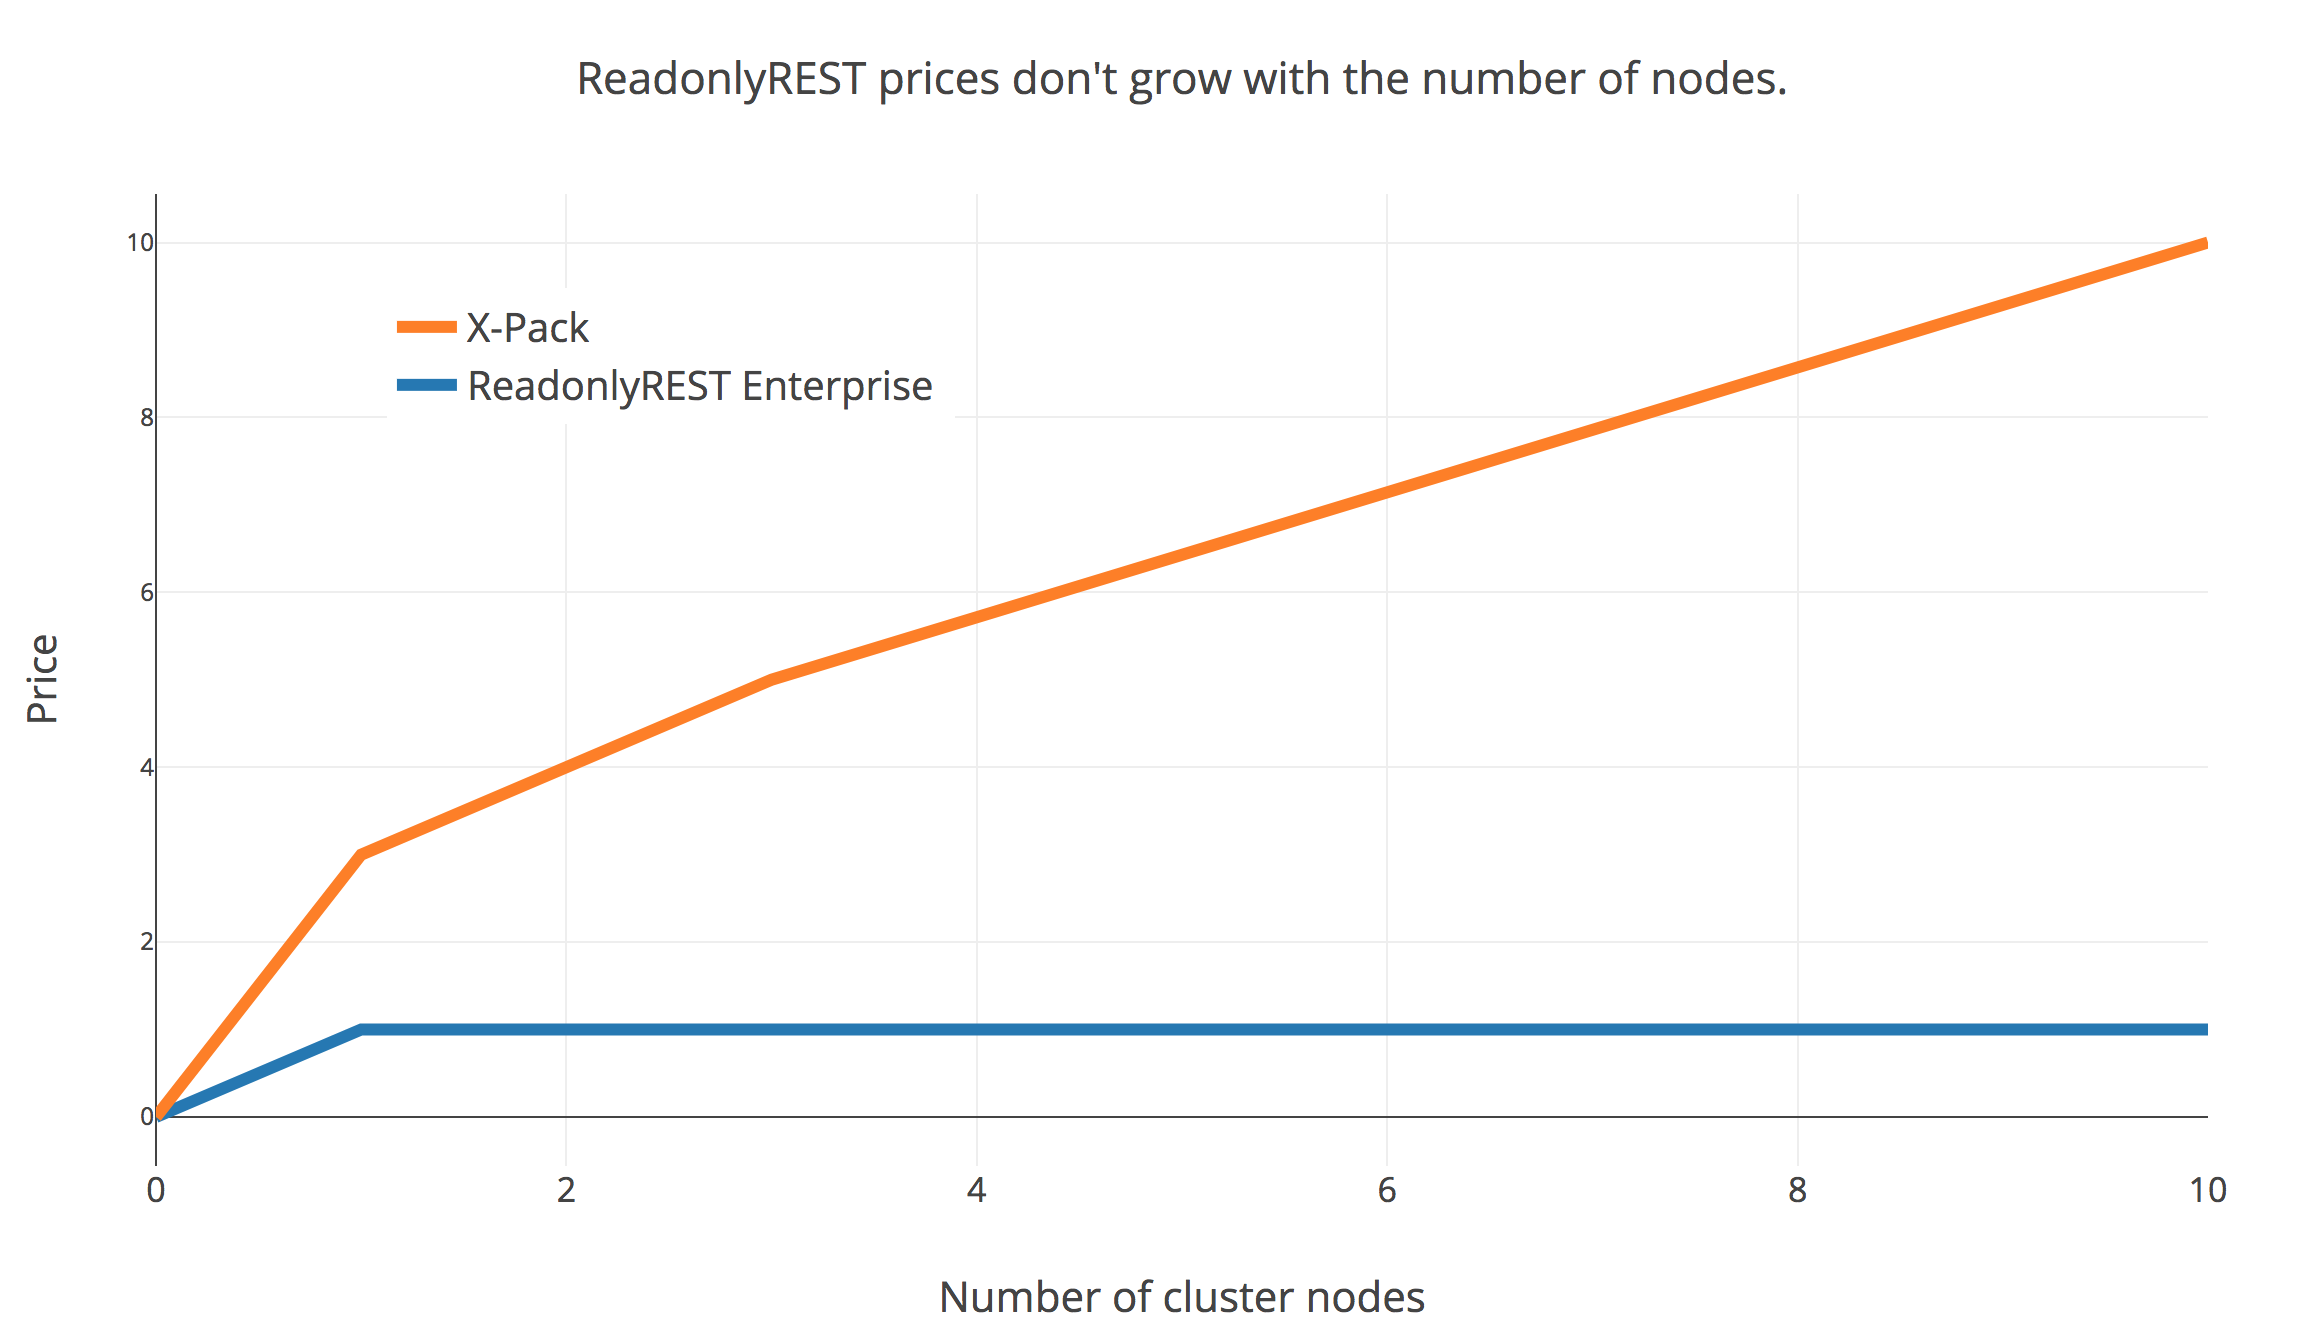 X-Pack prices by number of nodes